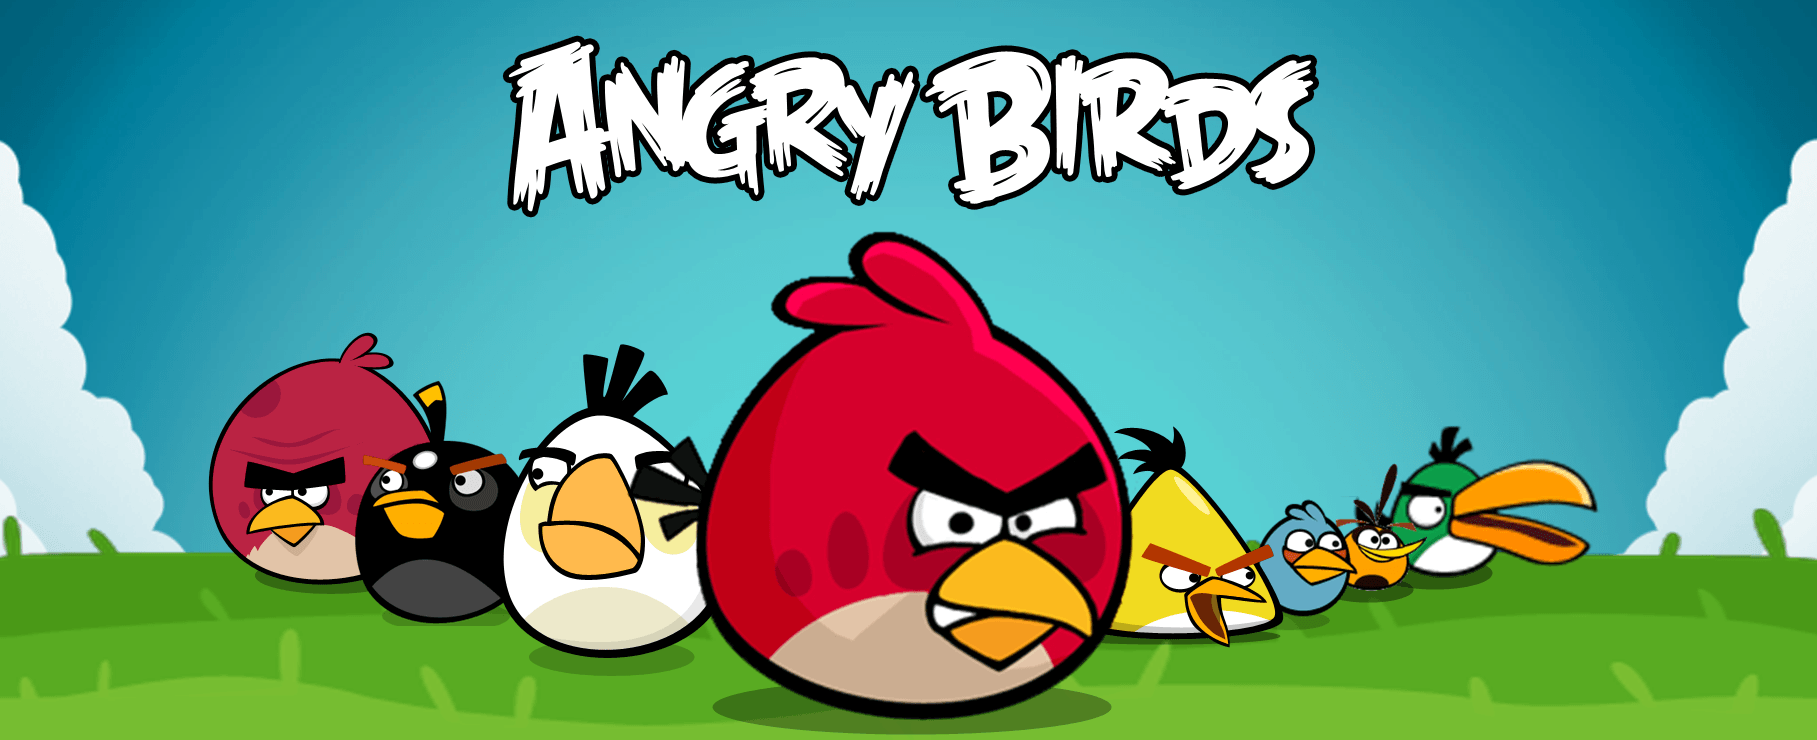 Angry Birds Wallpapers Group (90+)